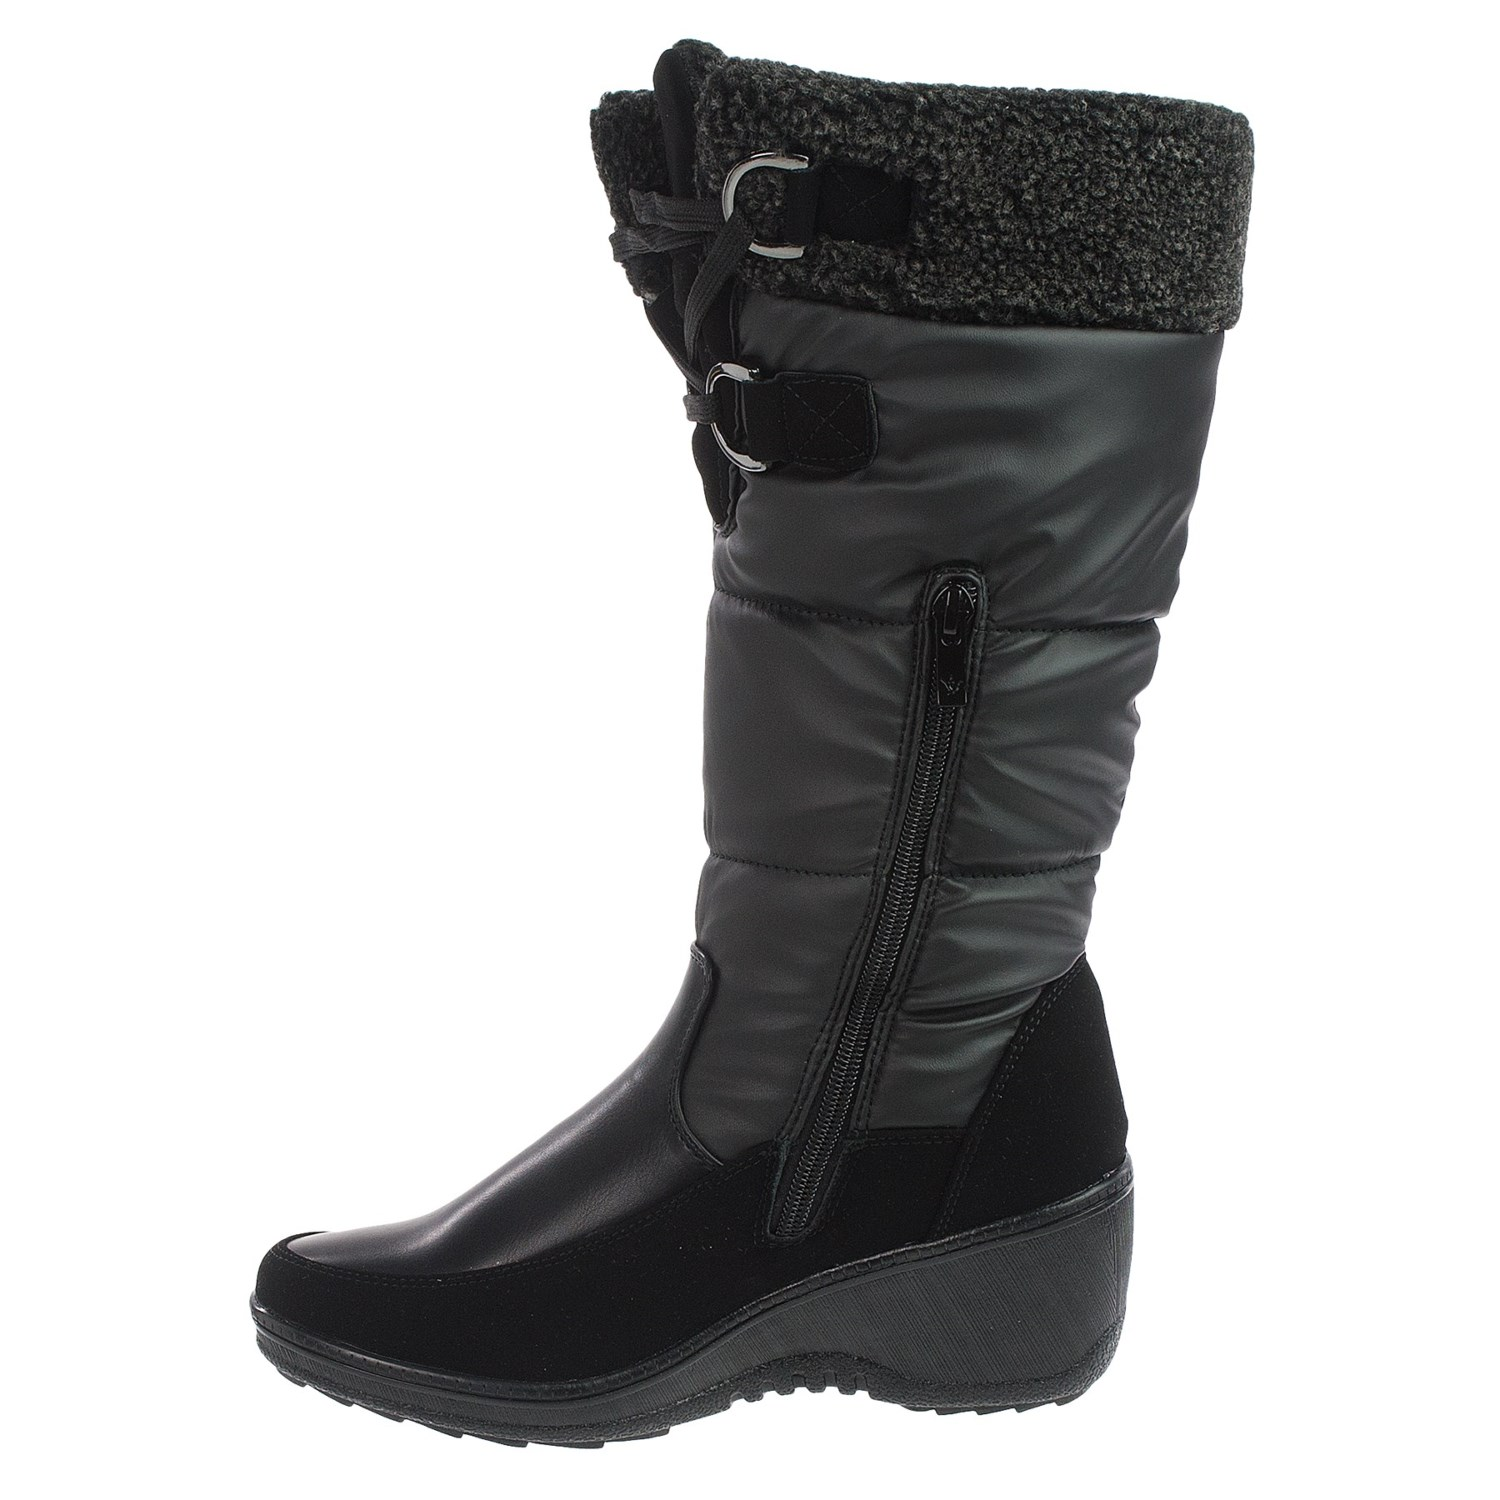 Aquatherm by Santana Canada Wren Snow Boots (For Women) - Save 81%